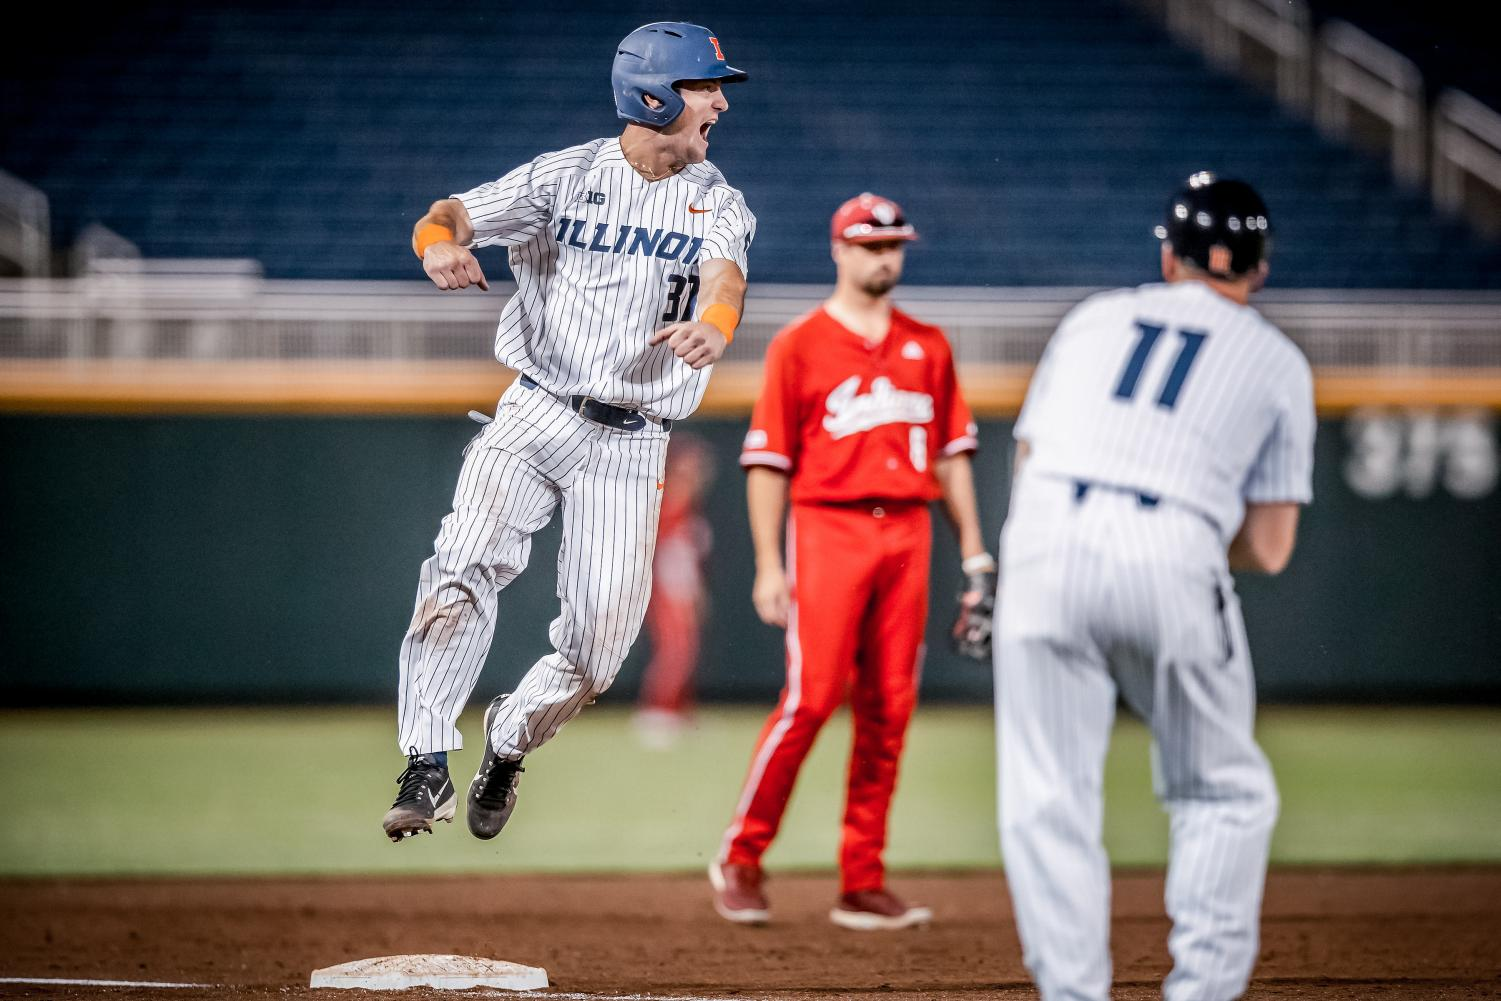 Illini center fielder Zac Taylor jumps at second base as the Illini battle Indiana at TD Ameritrade Park in Omaha, Nebraska on Saturday. Illinois went on to win 5-4 and advance to the semifinals of the Big Ten Tournament where they later lost to Purdue 11-5.